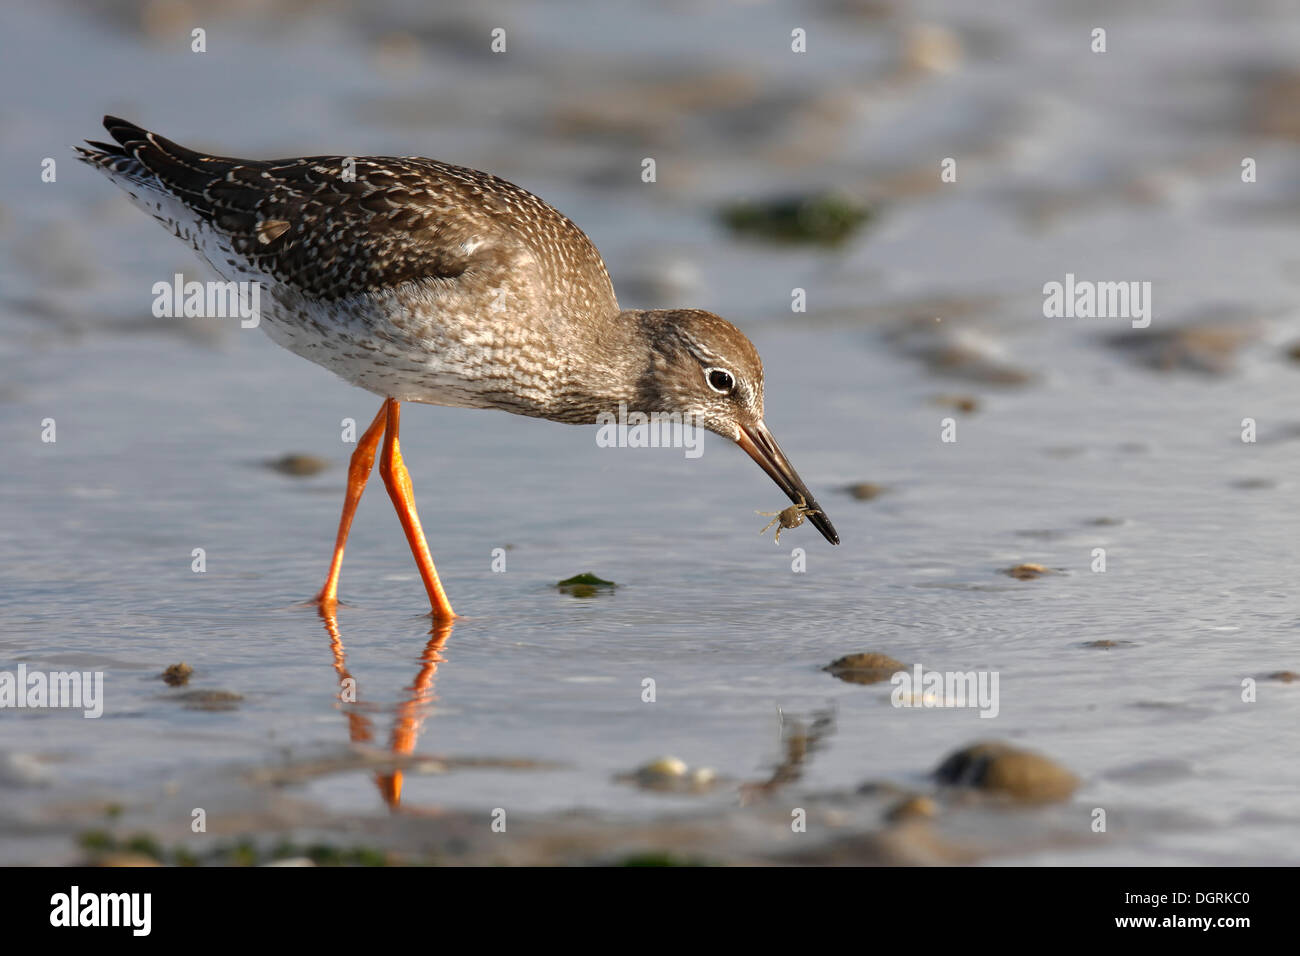 Common Redshank (Tringa totanus) searching for food in the mud, with Edible Crab or Brown Crab (Cancer pagurus), Minsener Oog, - Stock Image